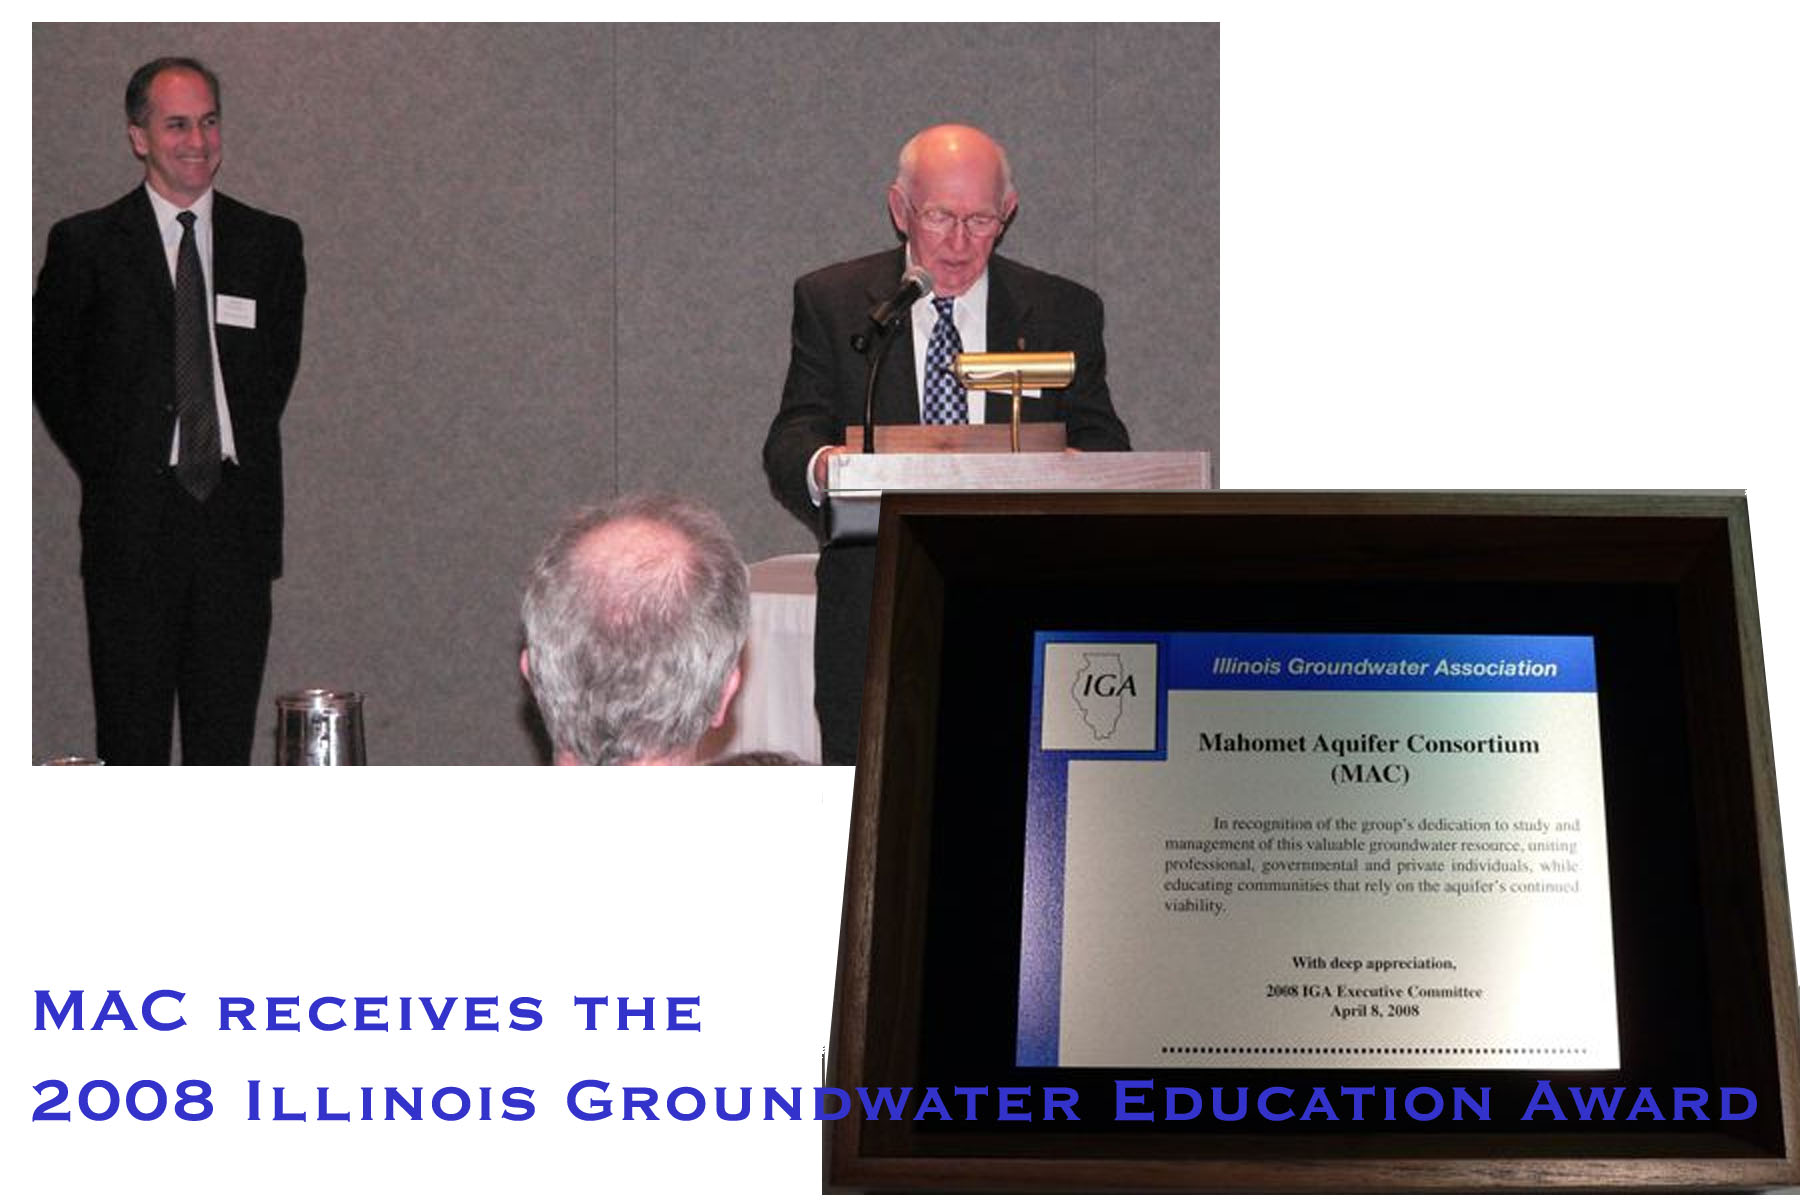 Mel Pleines accepts the 2008 Illinois Groundwater Education Award from the Illinois Groundwater Association, April 2008